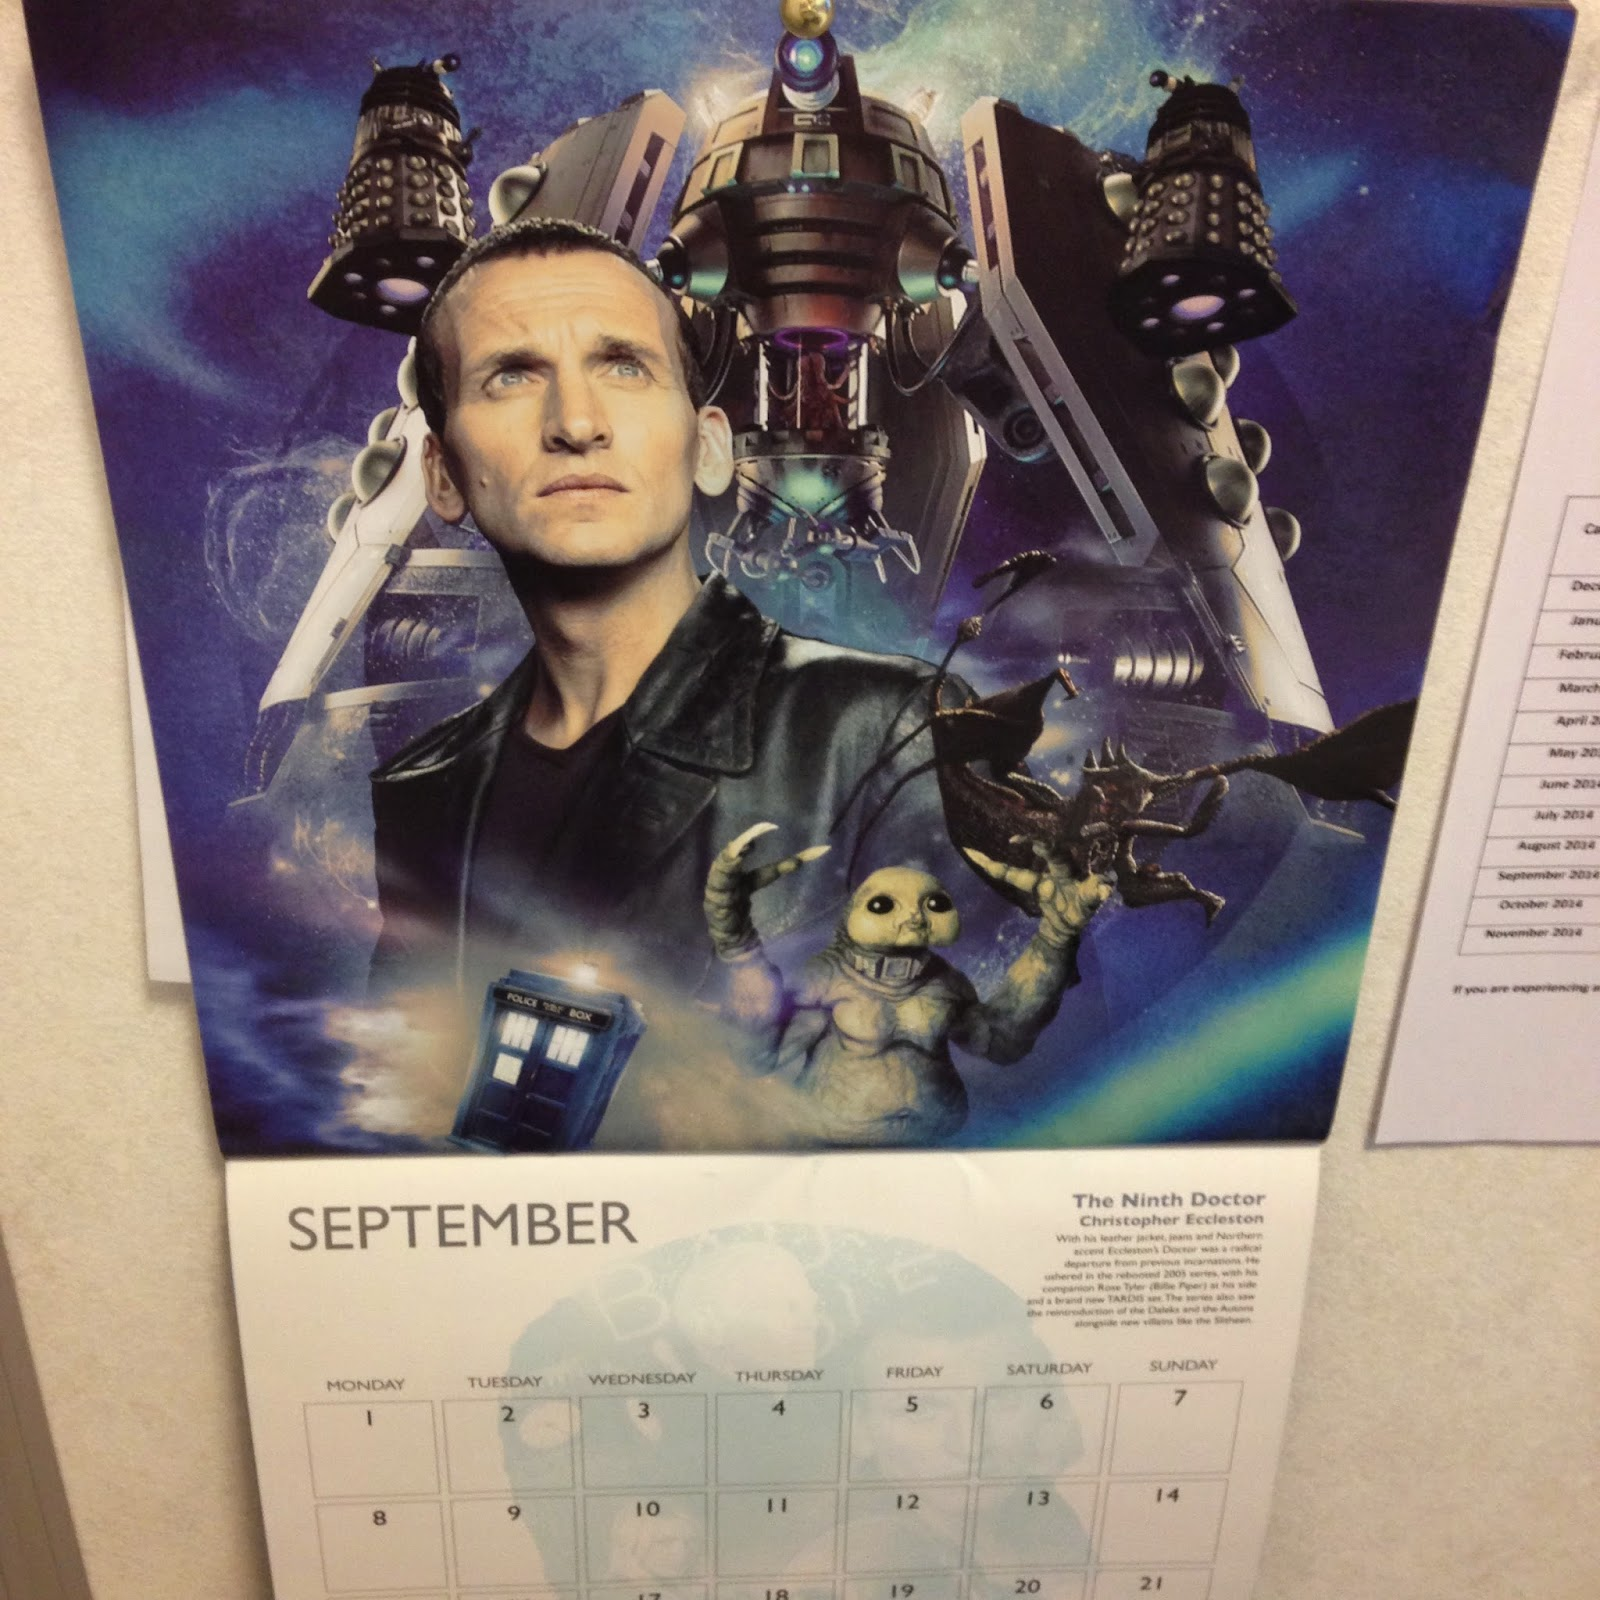 Chris Eccleston Doctor Who Calendar September 2014